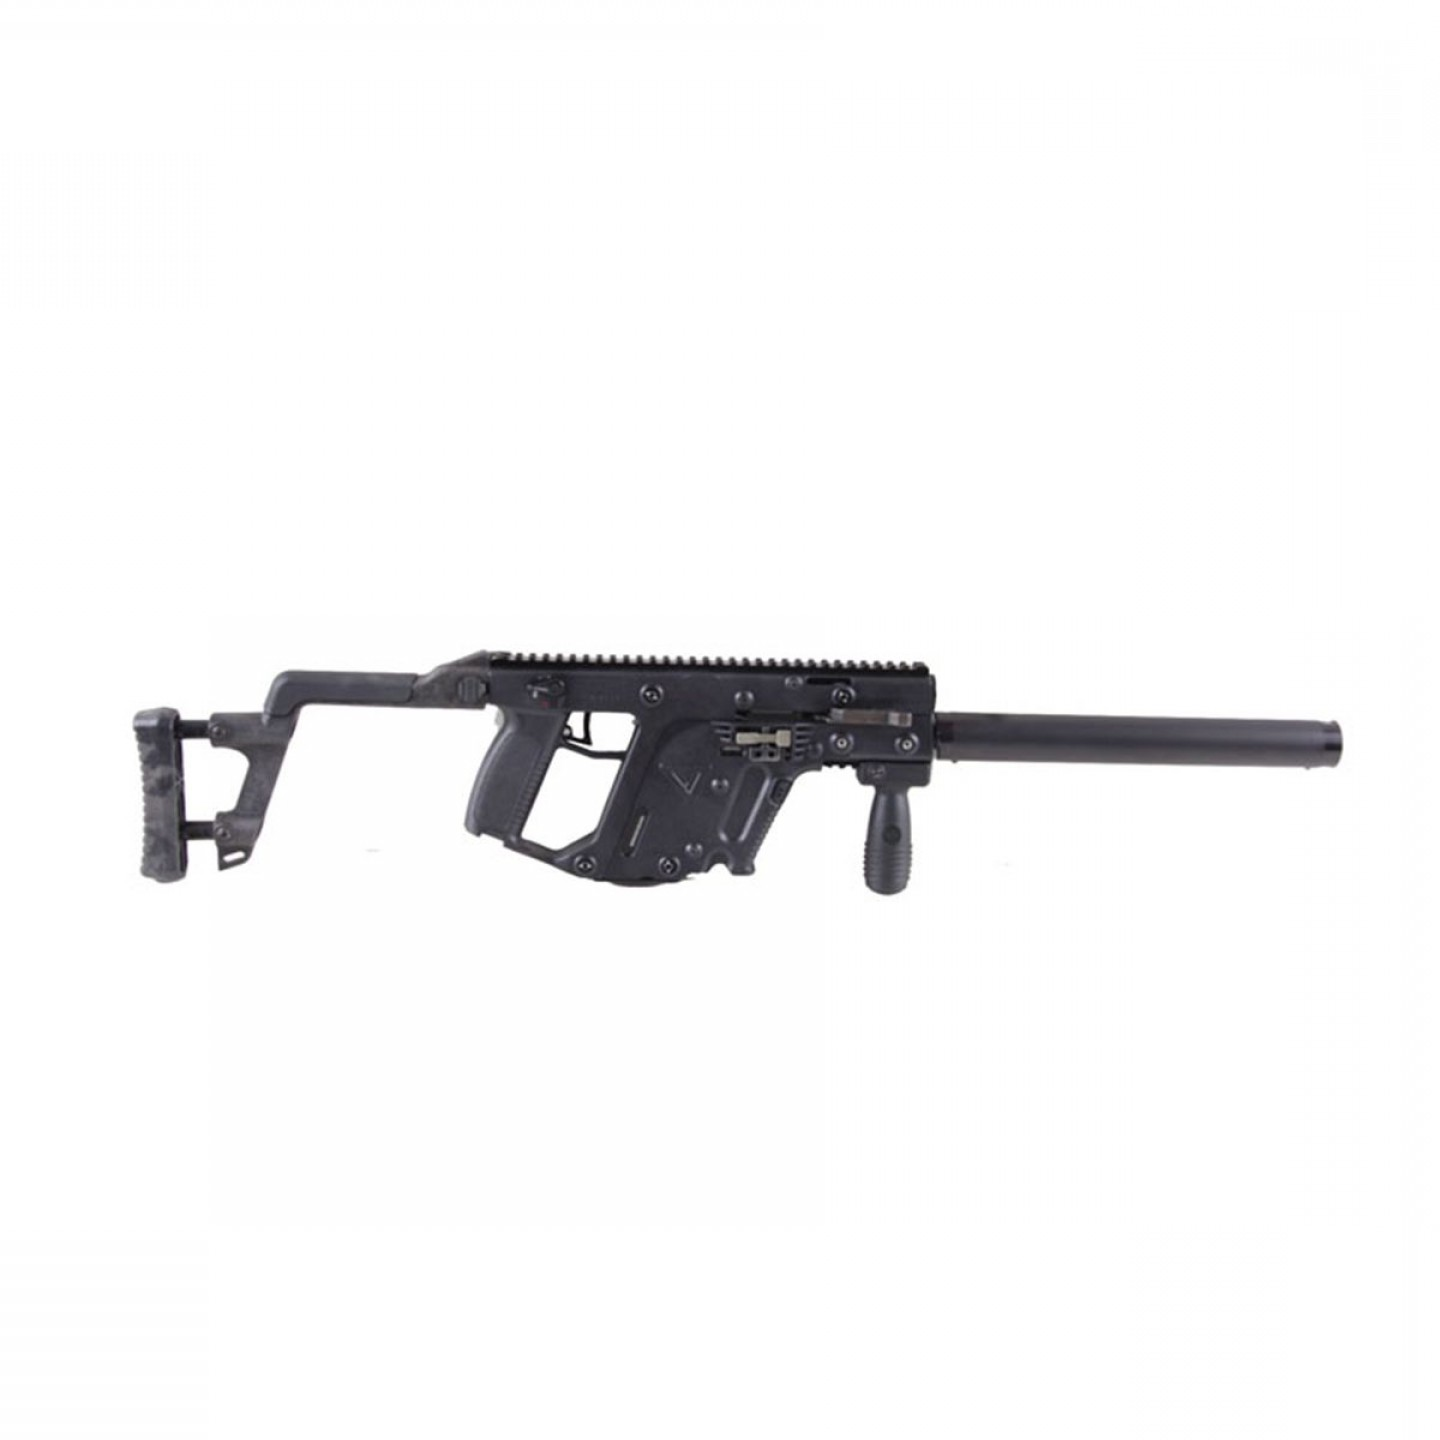 Kriss Vector 45ACP Carbine: Kriss Mdl Vector Crb Vo Cal Acp Sn Tdc A Unique Cad Designed Carbine In Acp Polymer Frai